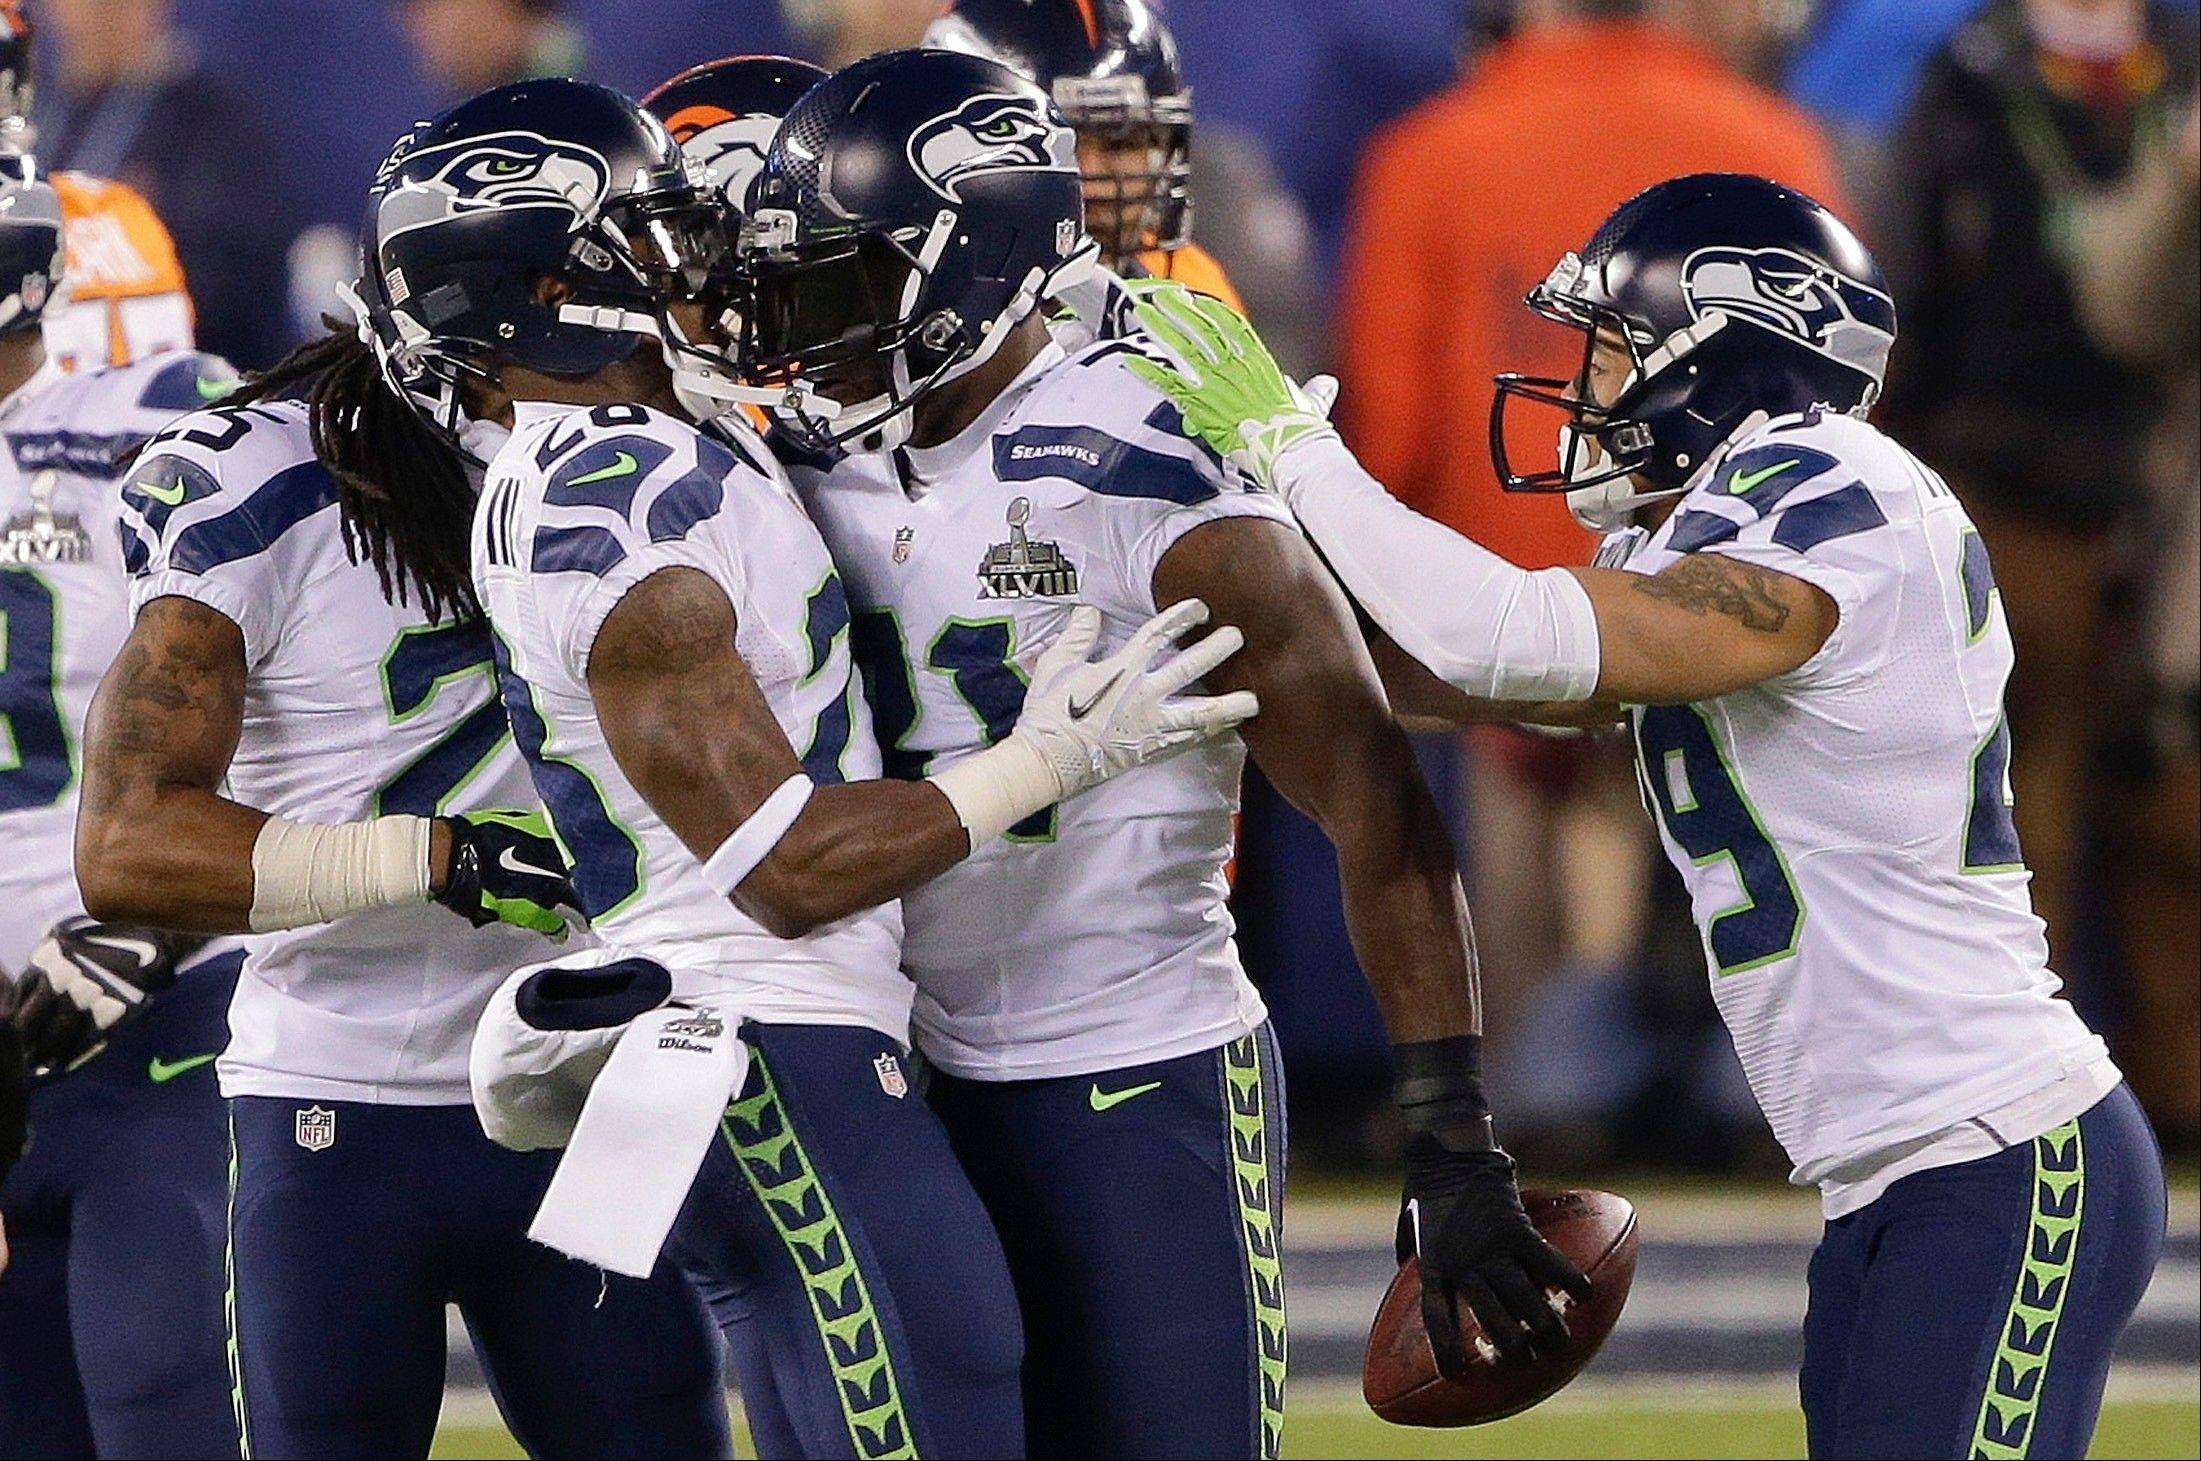 Seattle Seahawks strong safety Kam Chancellor (31) celebrates with teammates after intercepting a pass during the first half.